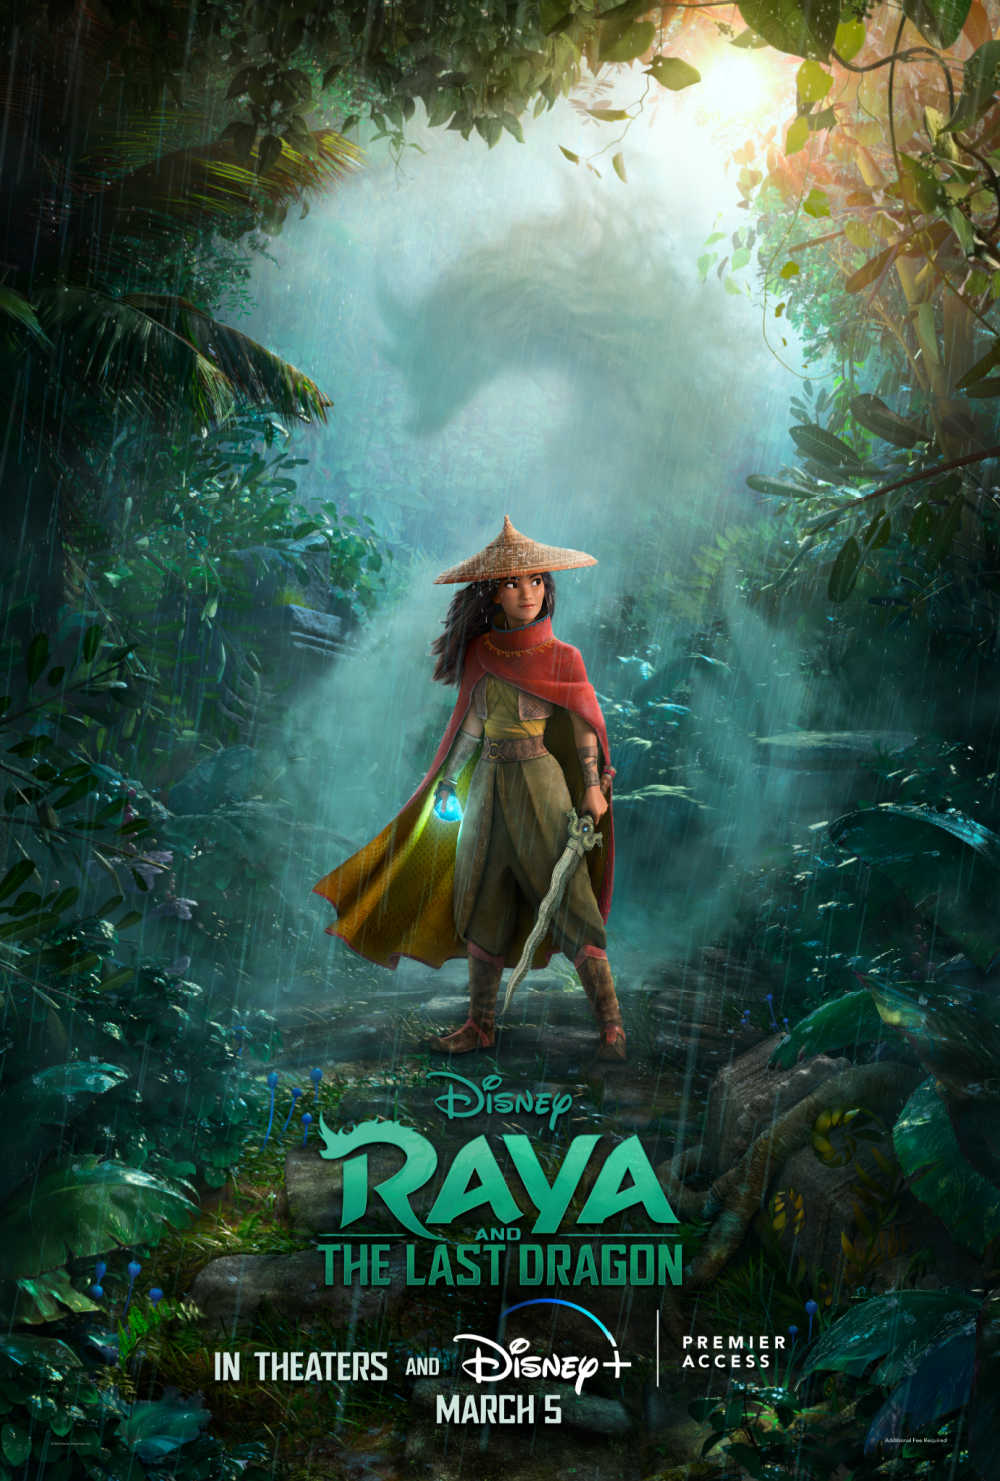 Family movie night is full of fun, adventure and fantasy, when you watch Disney's Raya and The Last Dragon together.